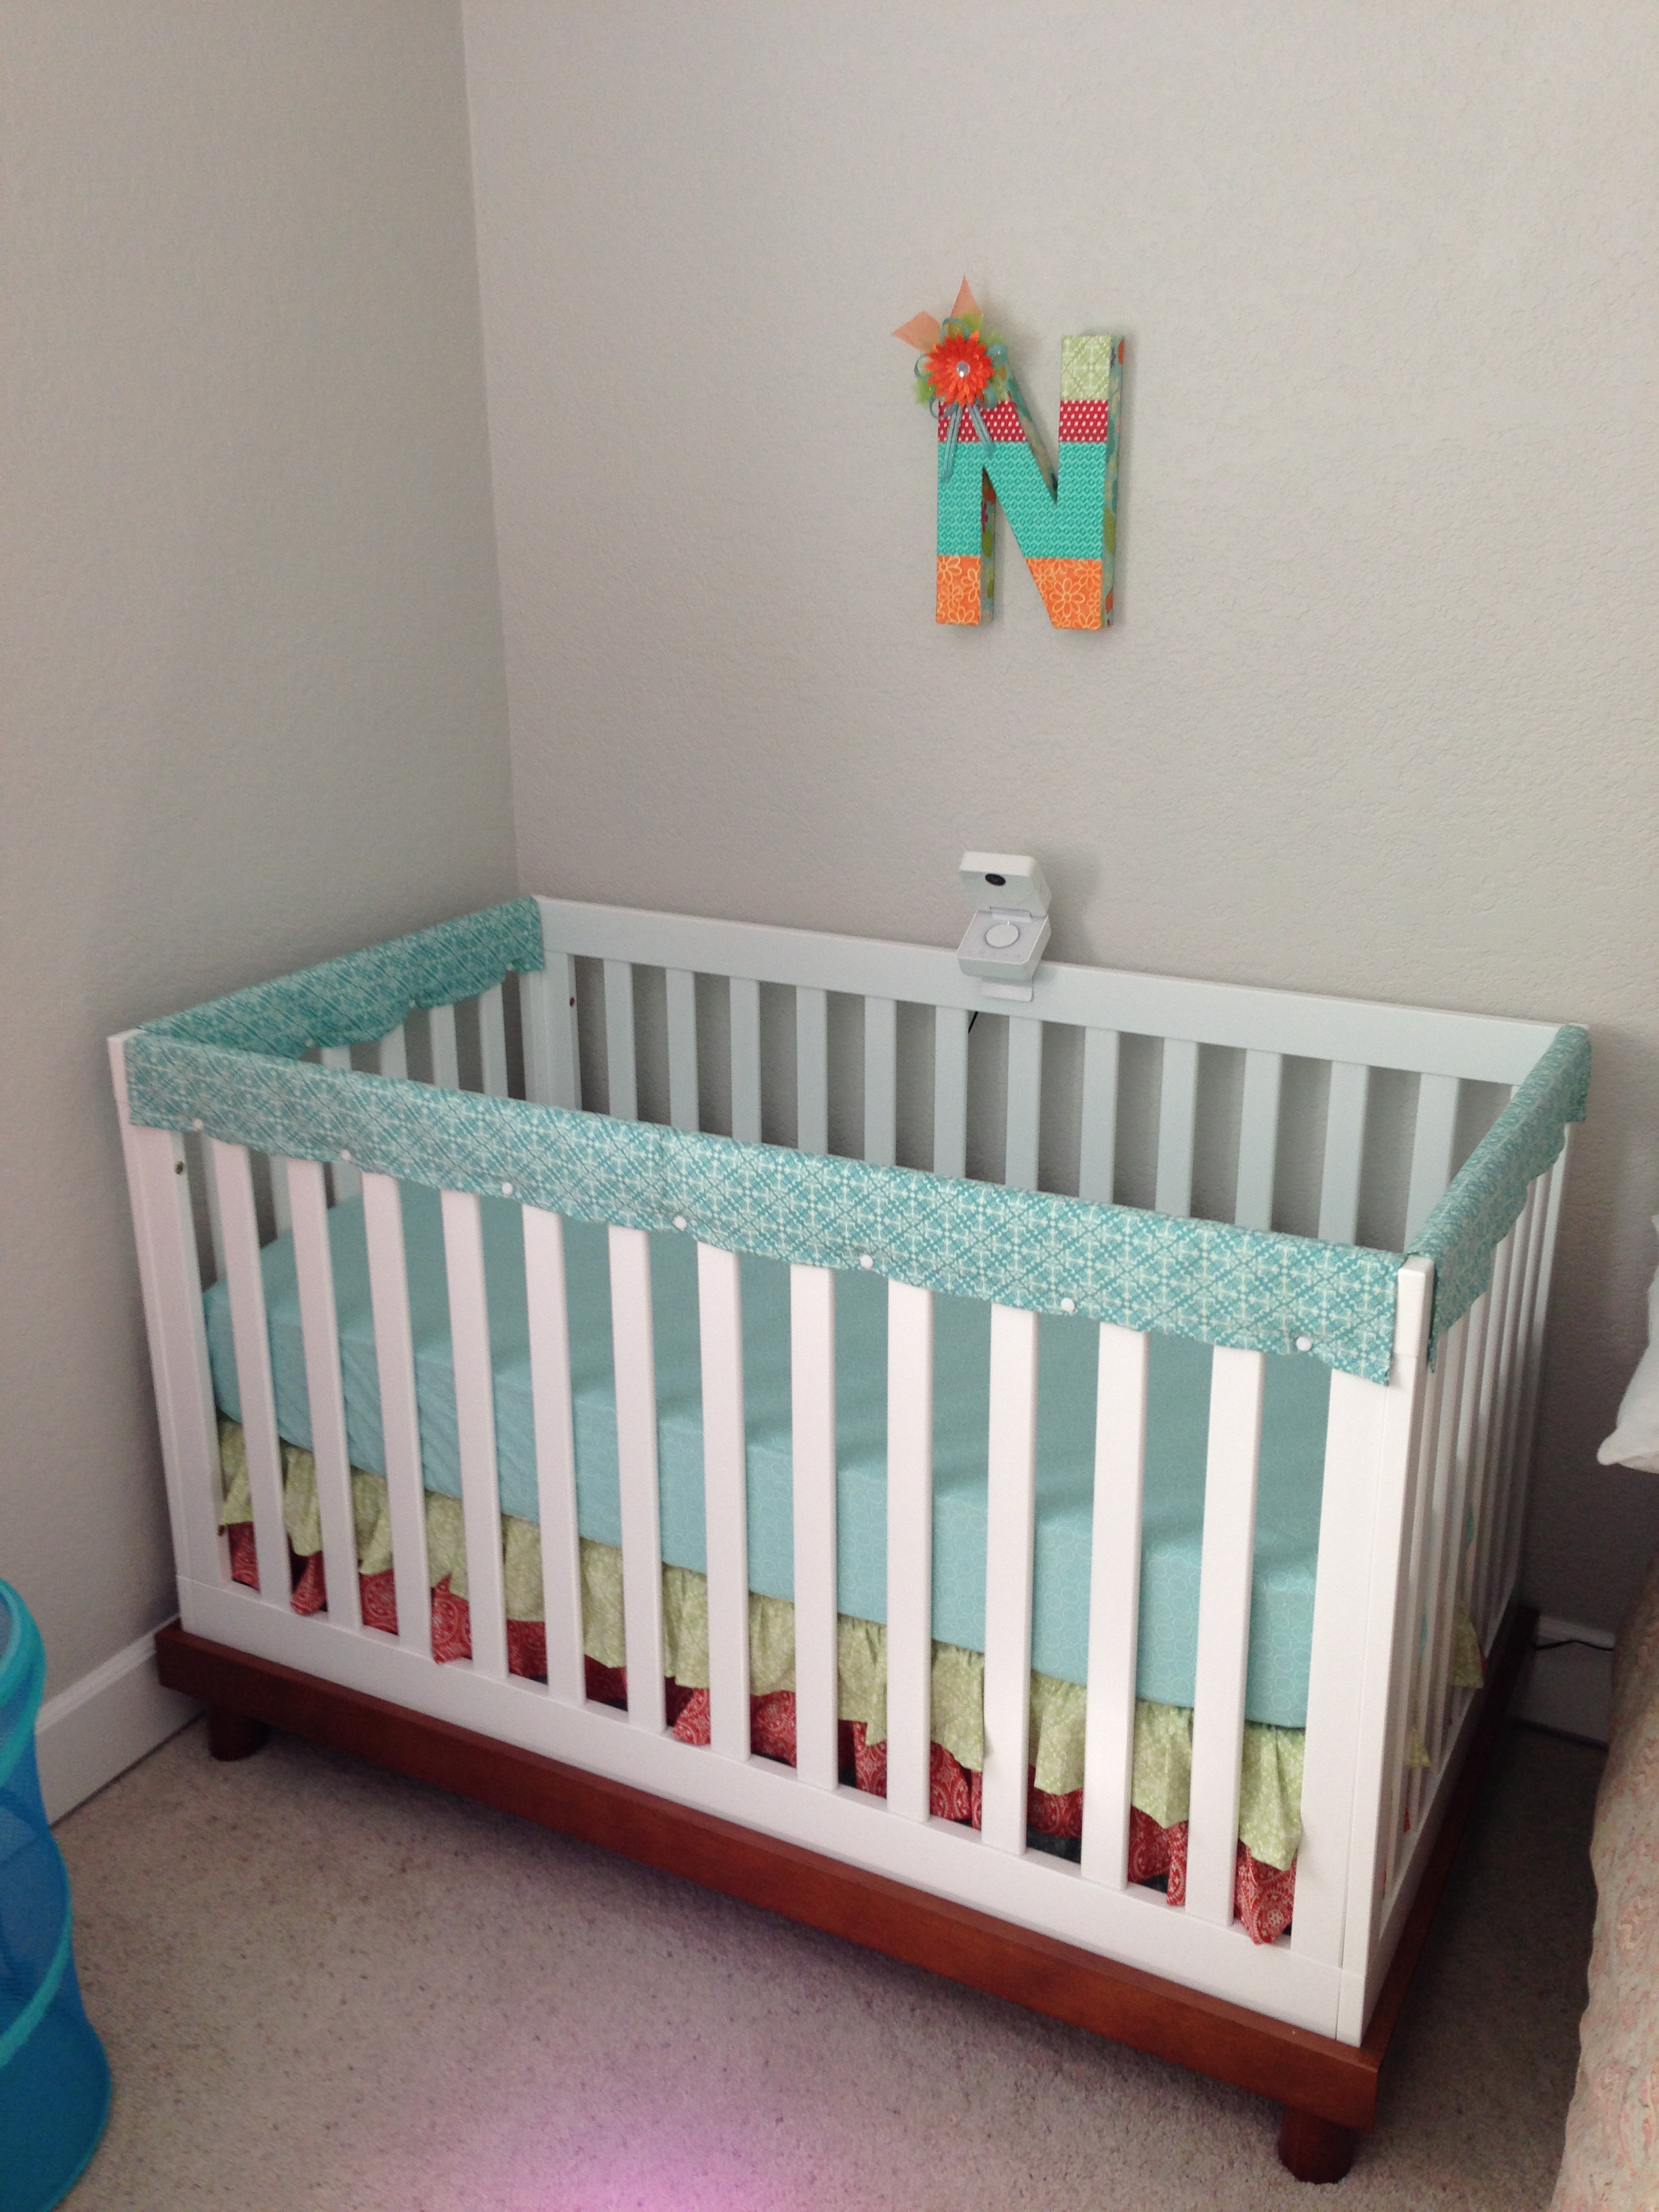 Crib rail cover diy crafts for Baby cot decoration images